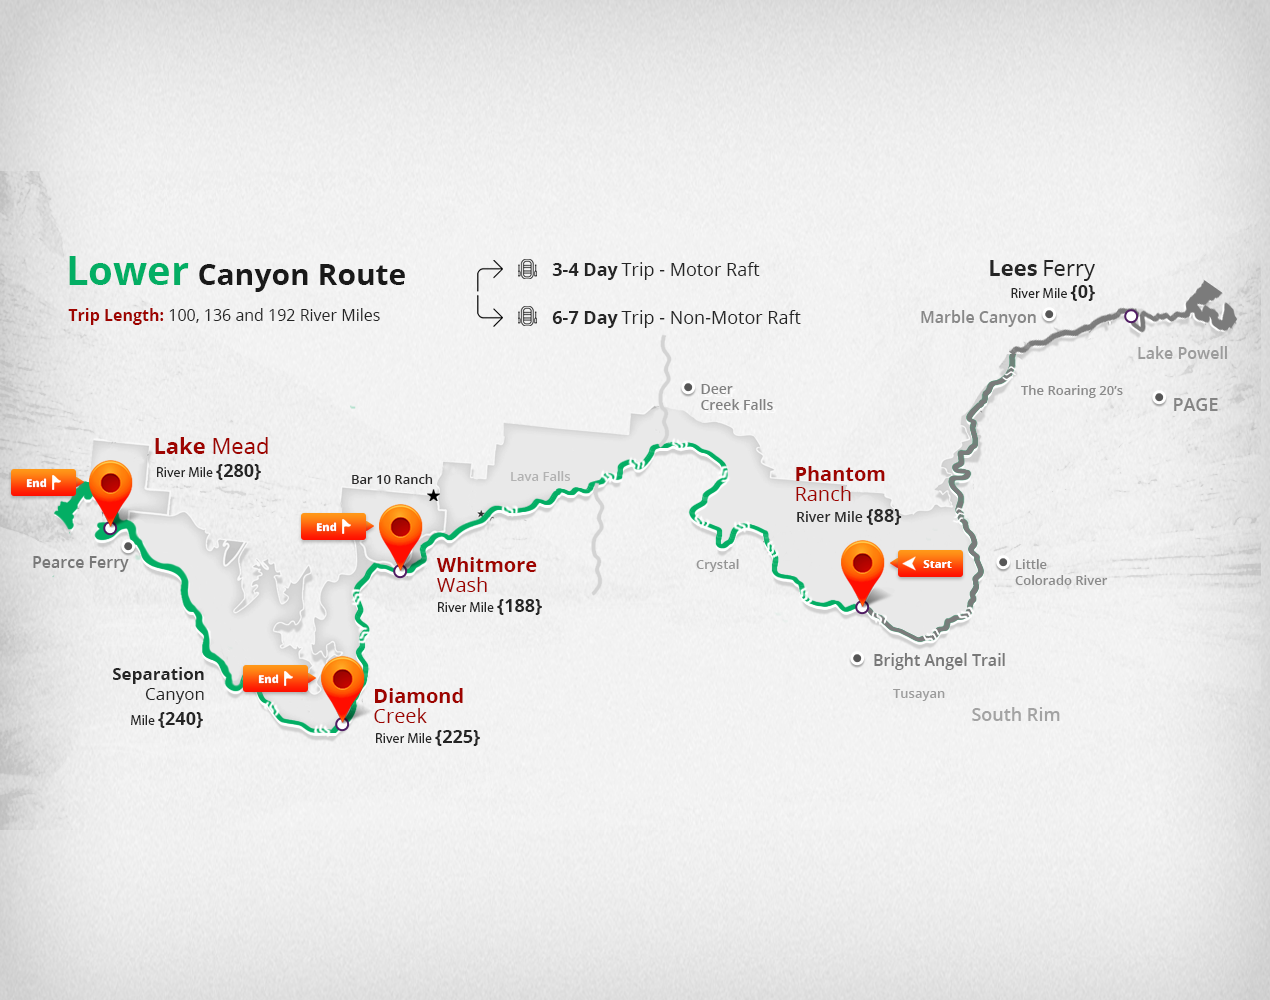 LOWER GRAND CANYON ROUTE MAP